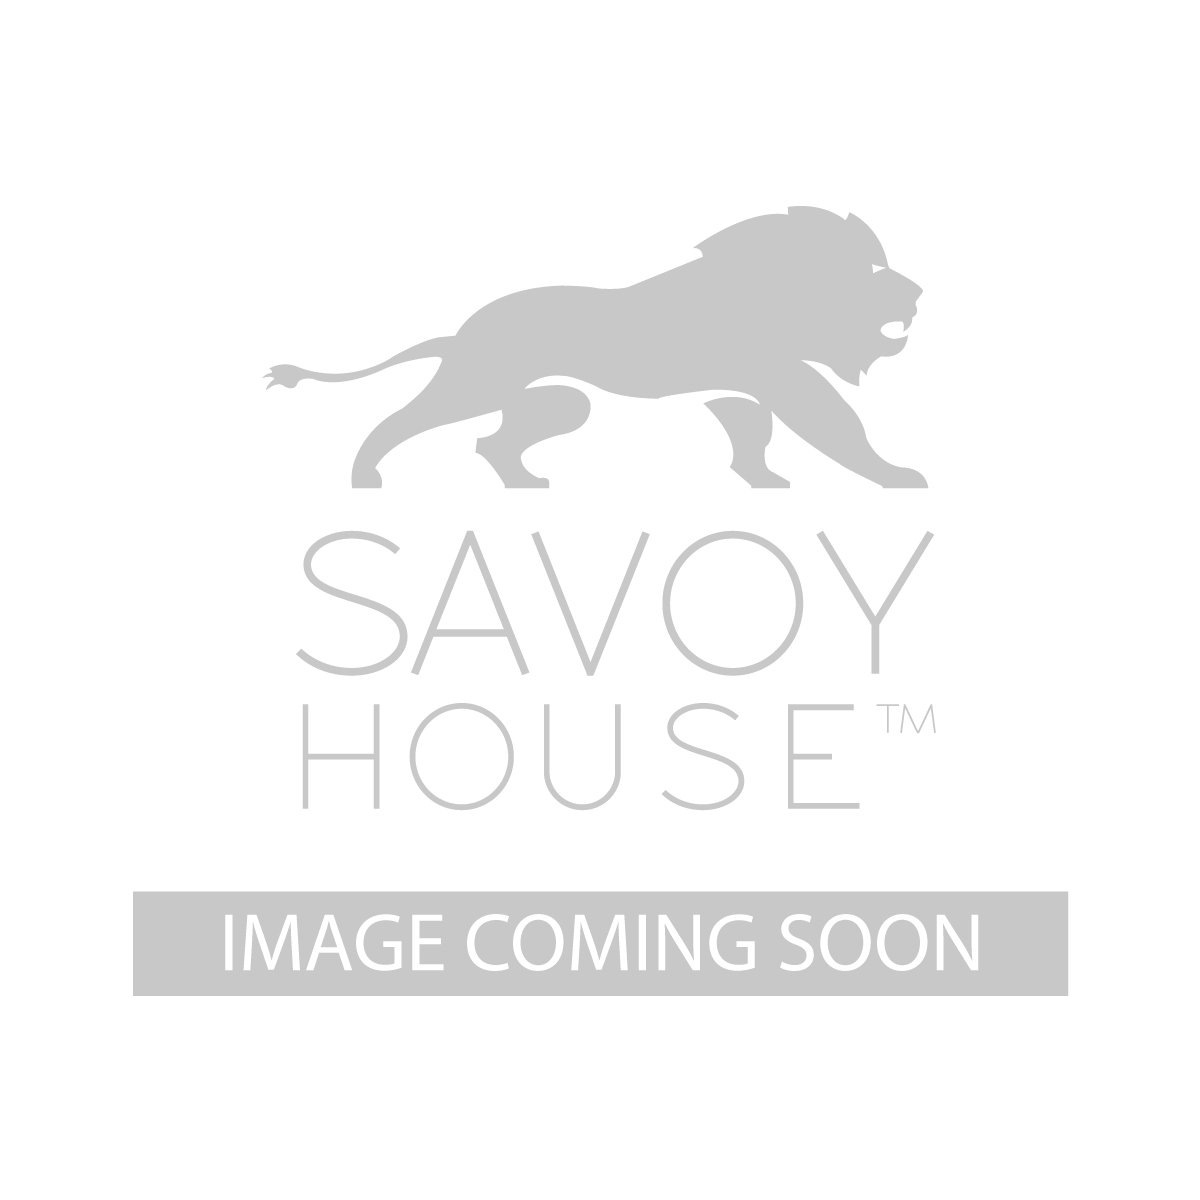 Kp 5 4901c 31 exterior collections jelly jar flush mount by savoy exterior collections jelly jar flush mount arubaitofo Choice Image